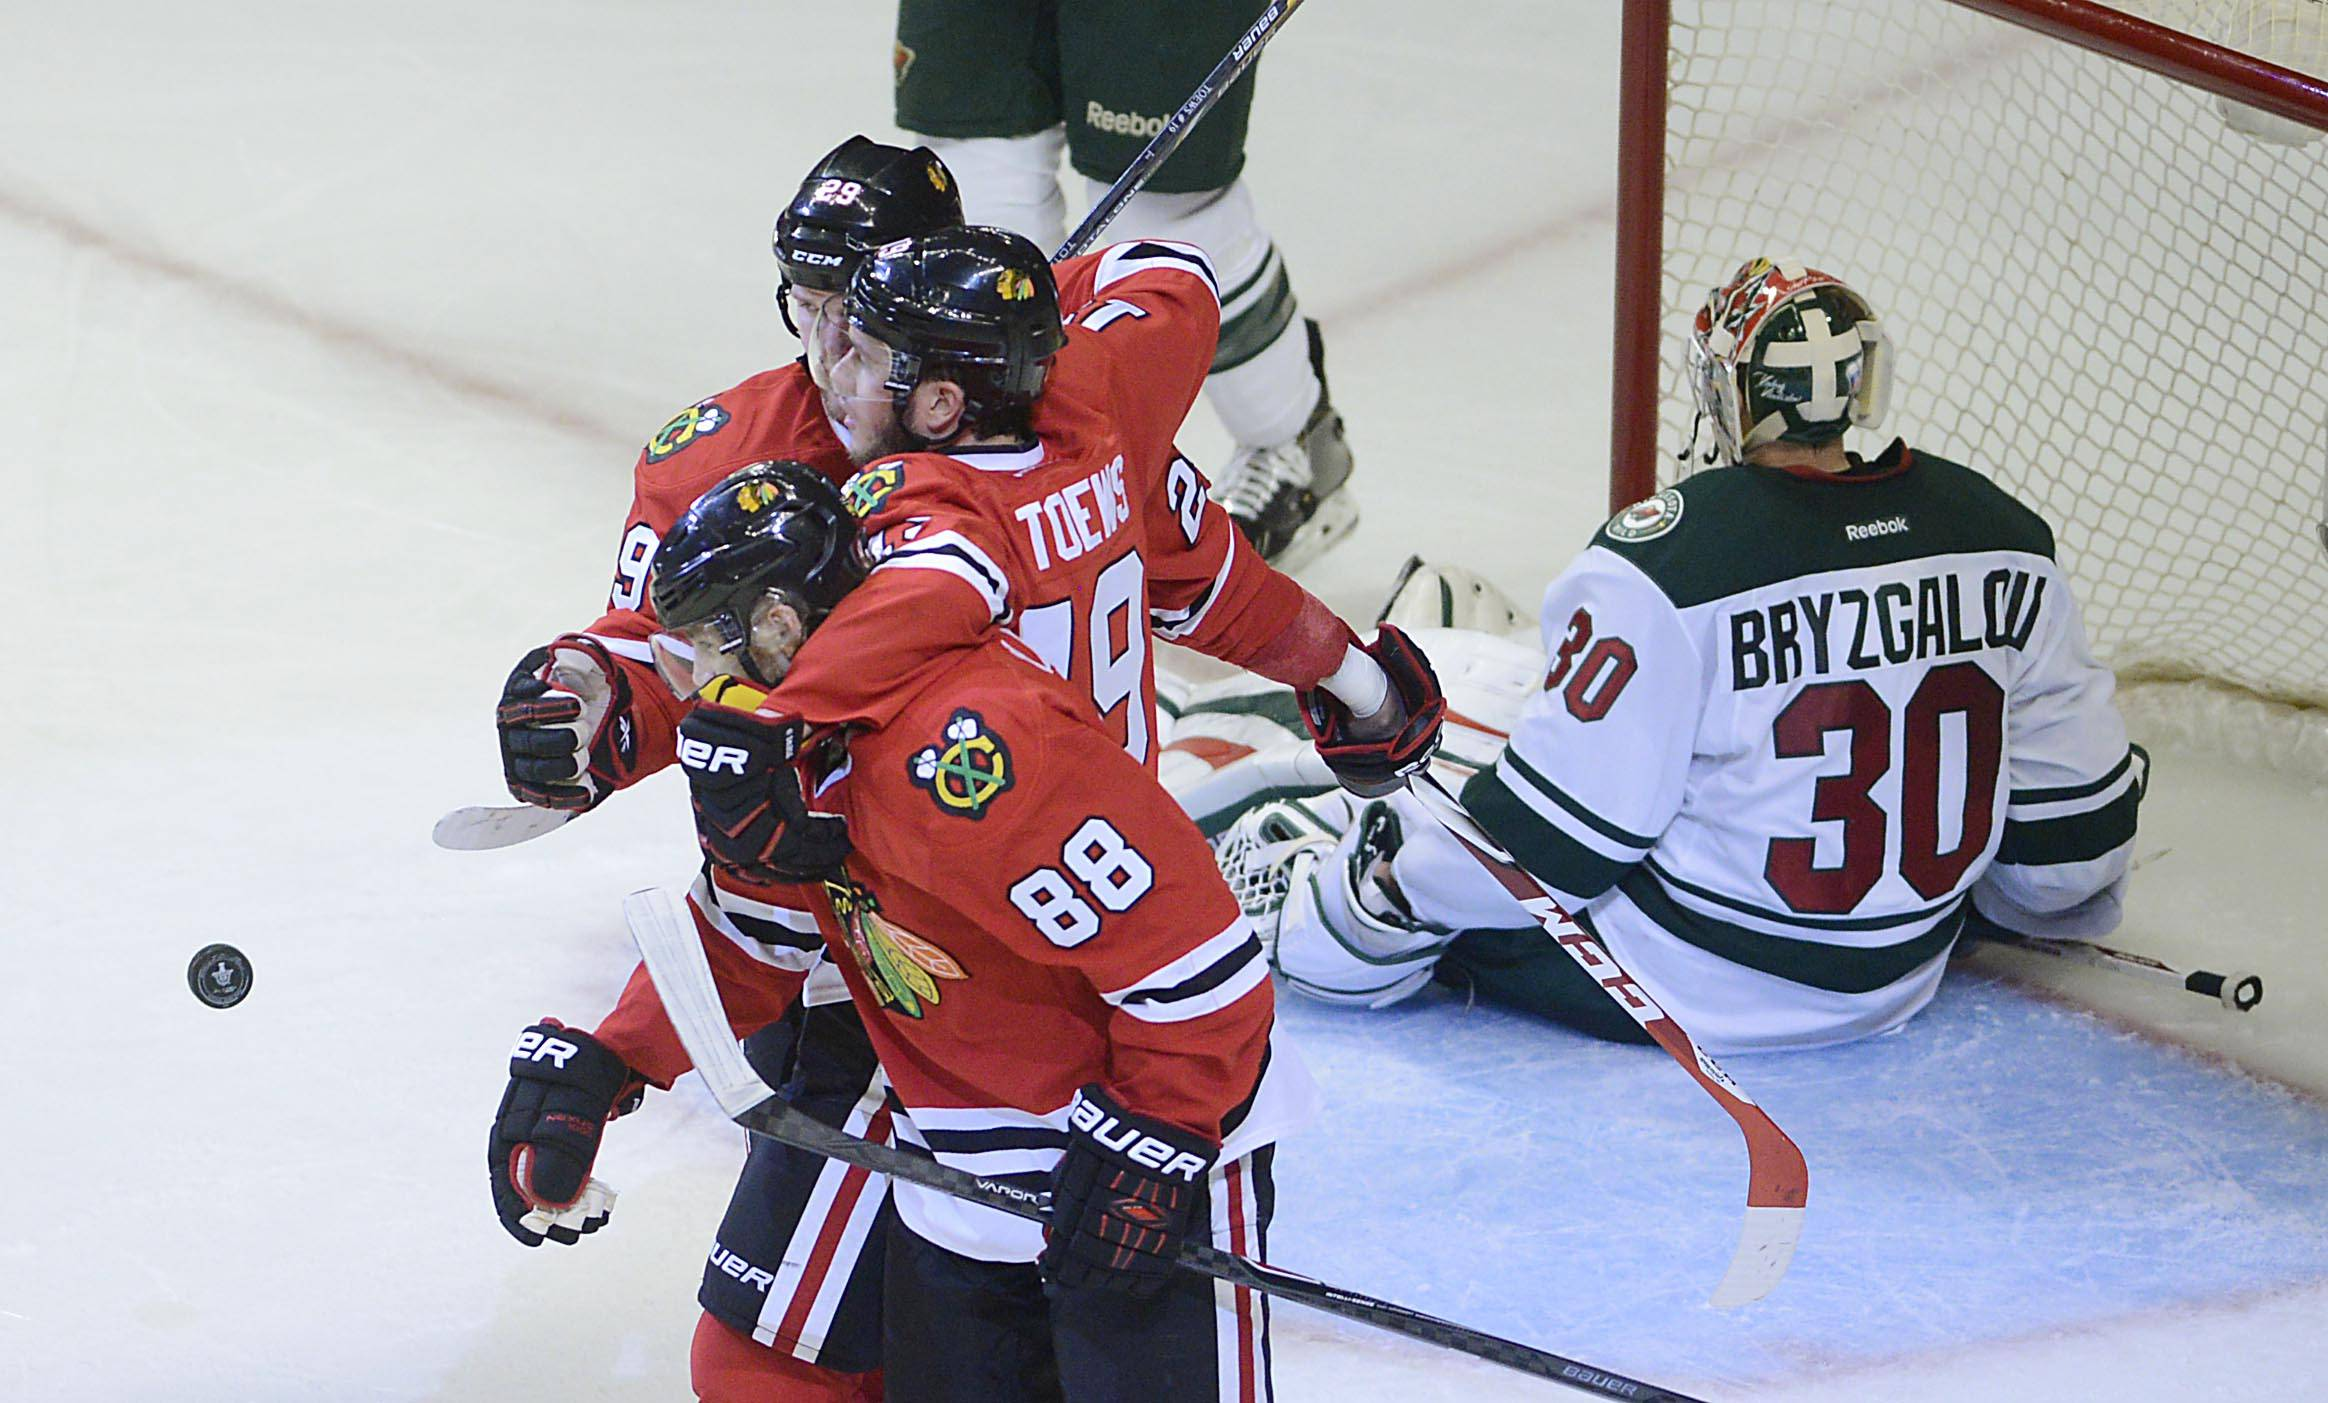 With a little will, Blackhawks find way